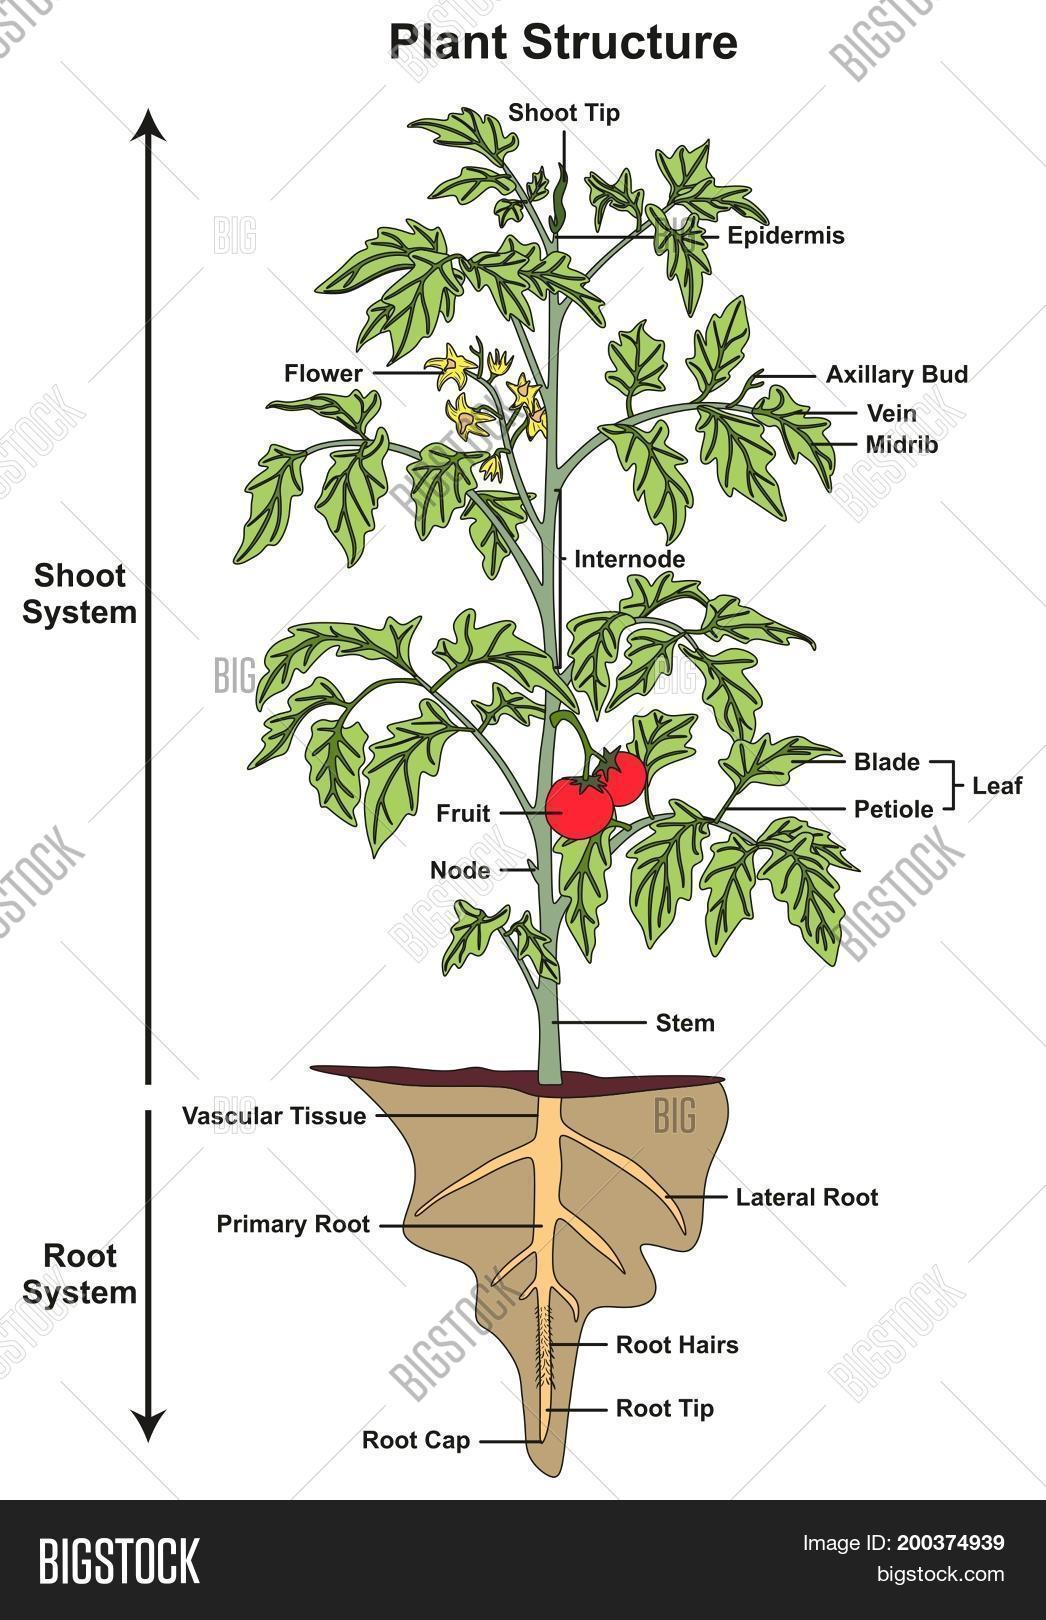 Plant Structure Infographic Diagram Image Amp Photo